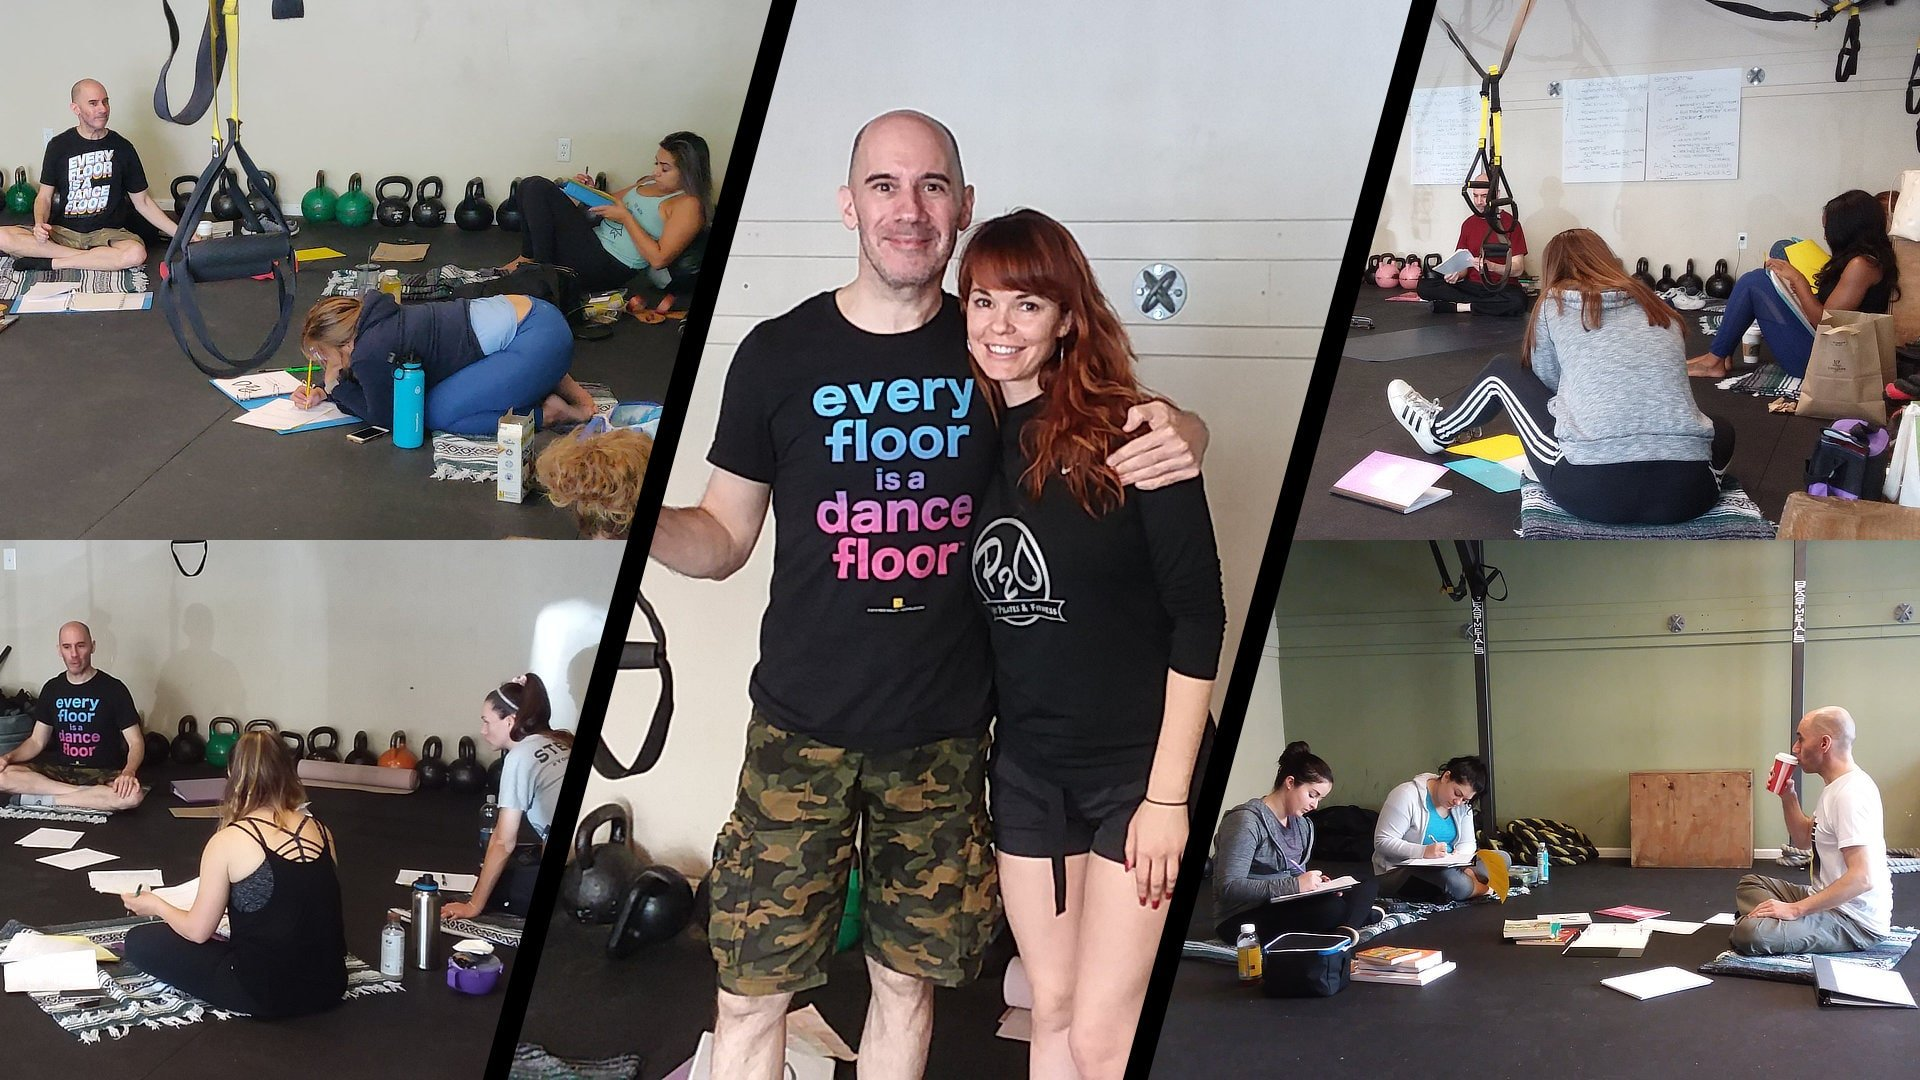 Leading Public Speaking & Confidence Workshops during owner Lindy Hobbs's Hot Pilates Instructor Training. P2O Hot Pilates & Fitness, Sacramento, CA.